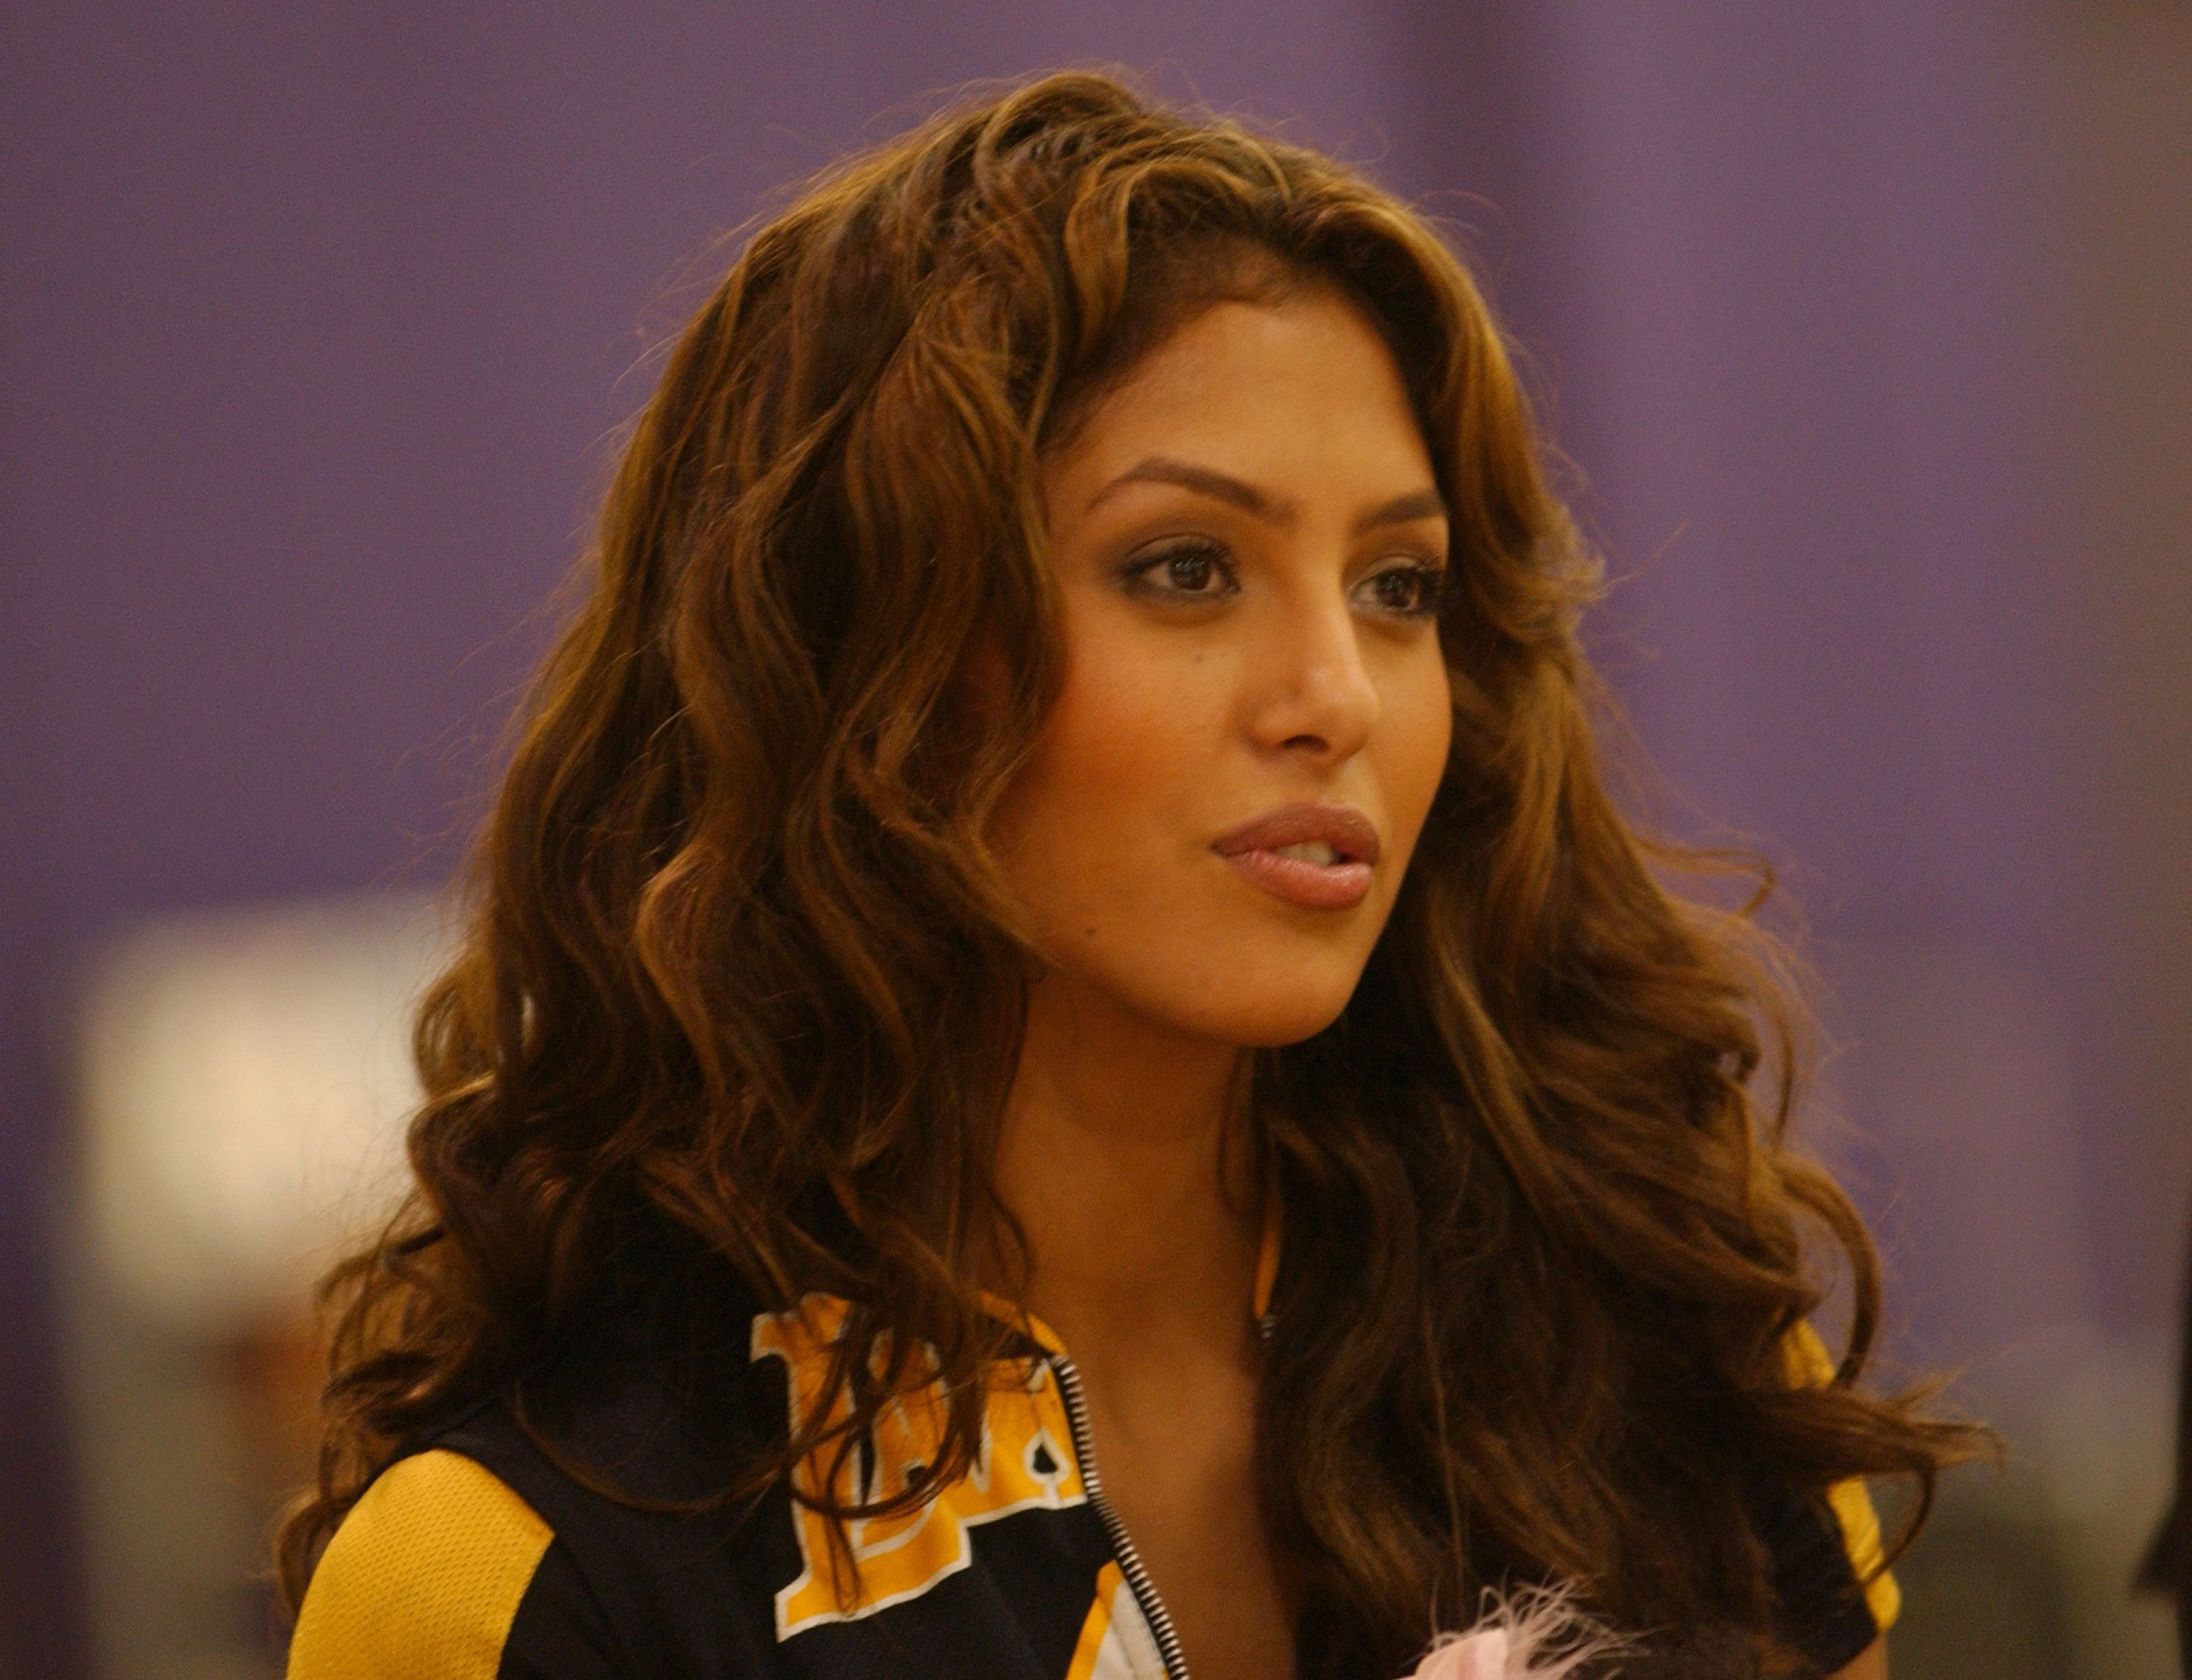 Vanessa Bryant listens to Kobe Bryant speak at a press conference in El Segundo, California, July 15, 2004. | Photo: Getty Images